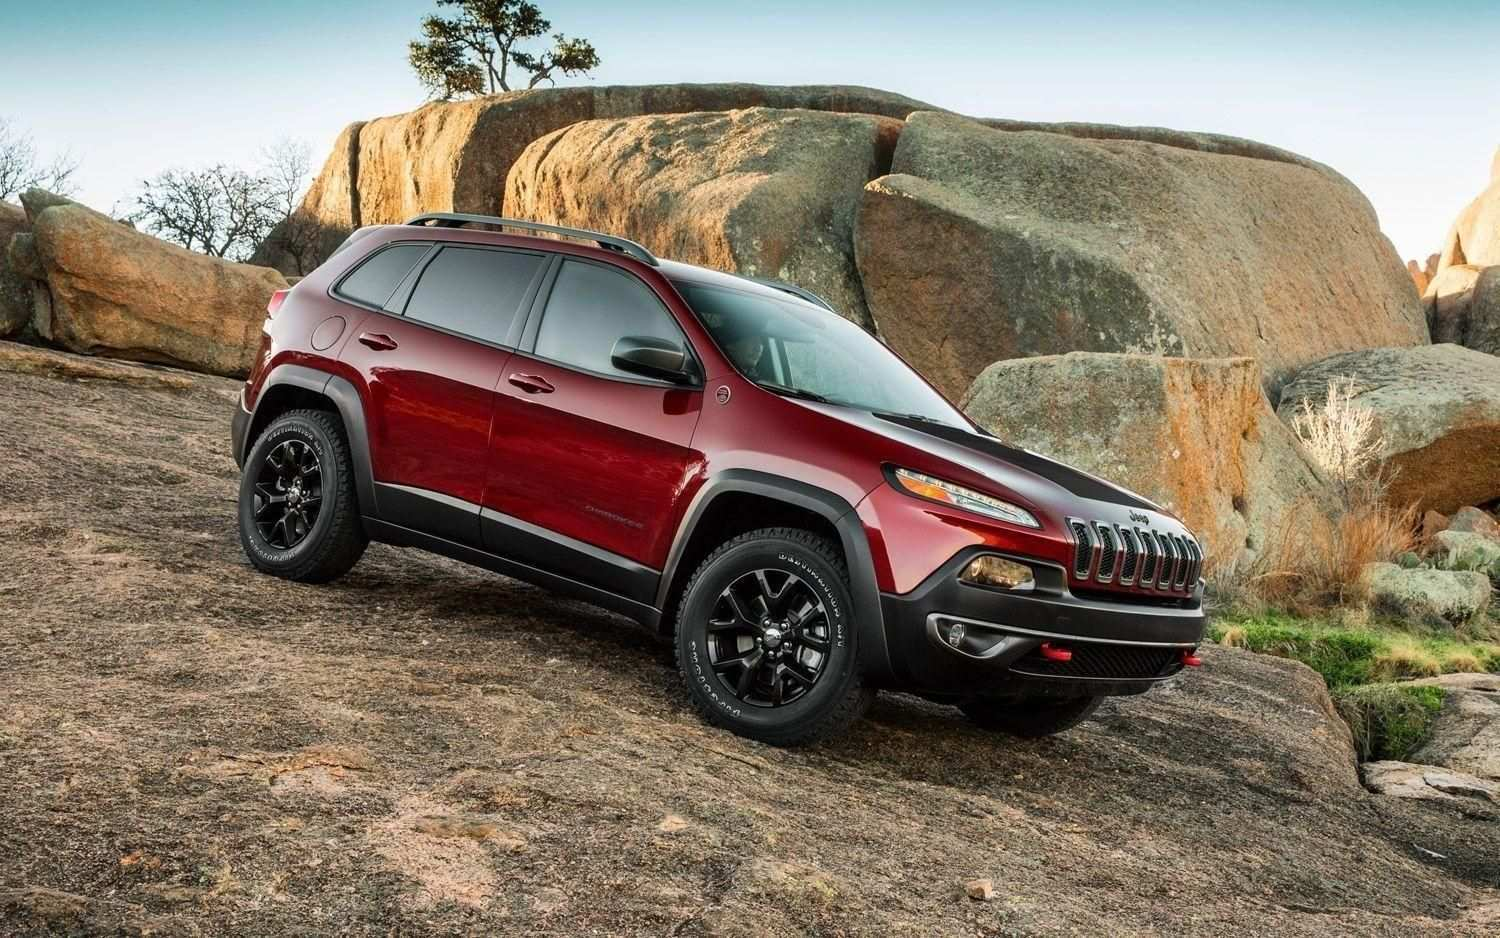 55 Concept of 2019 Jeep Mpg Rumors for 2019 Jeep Mpg